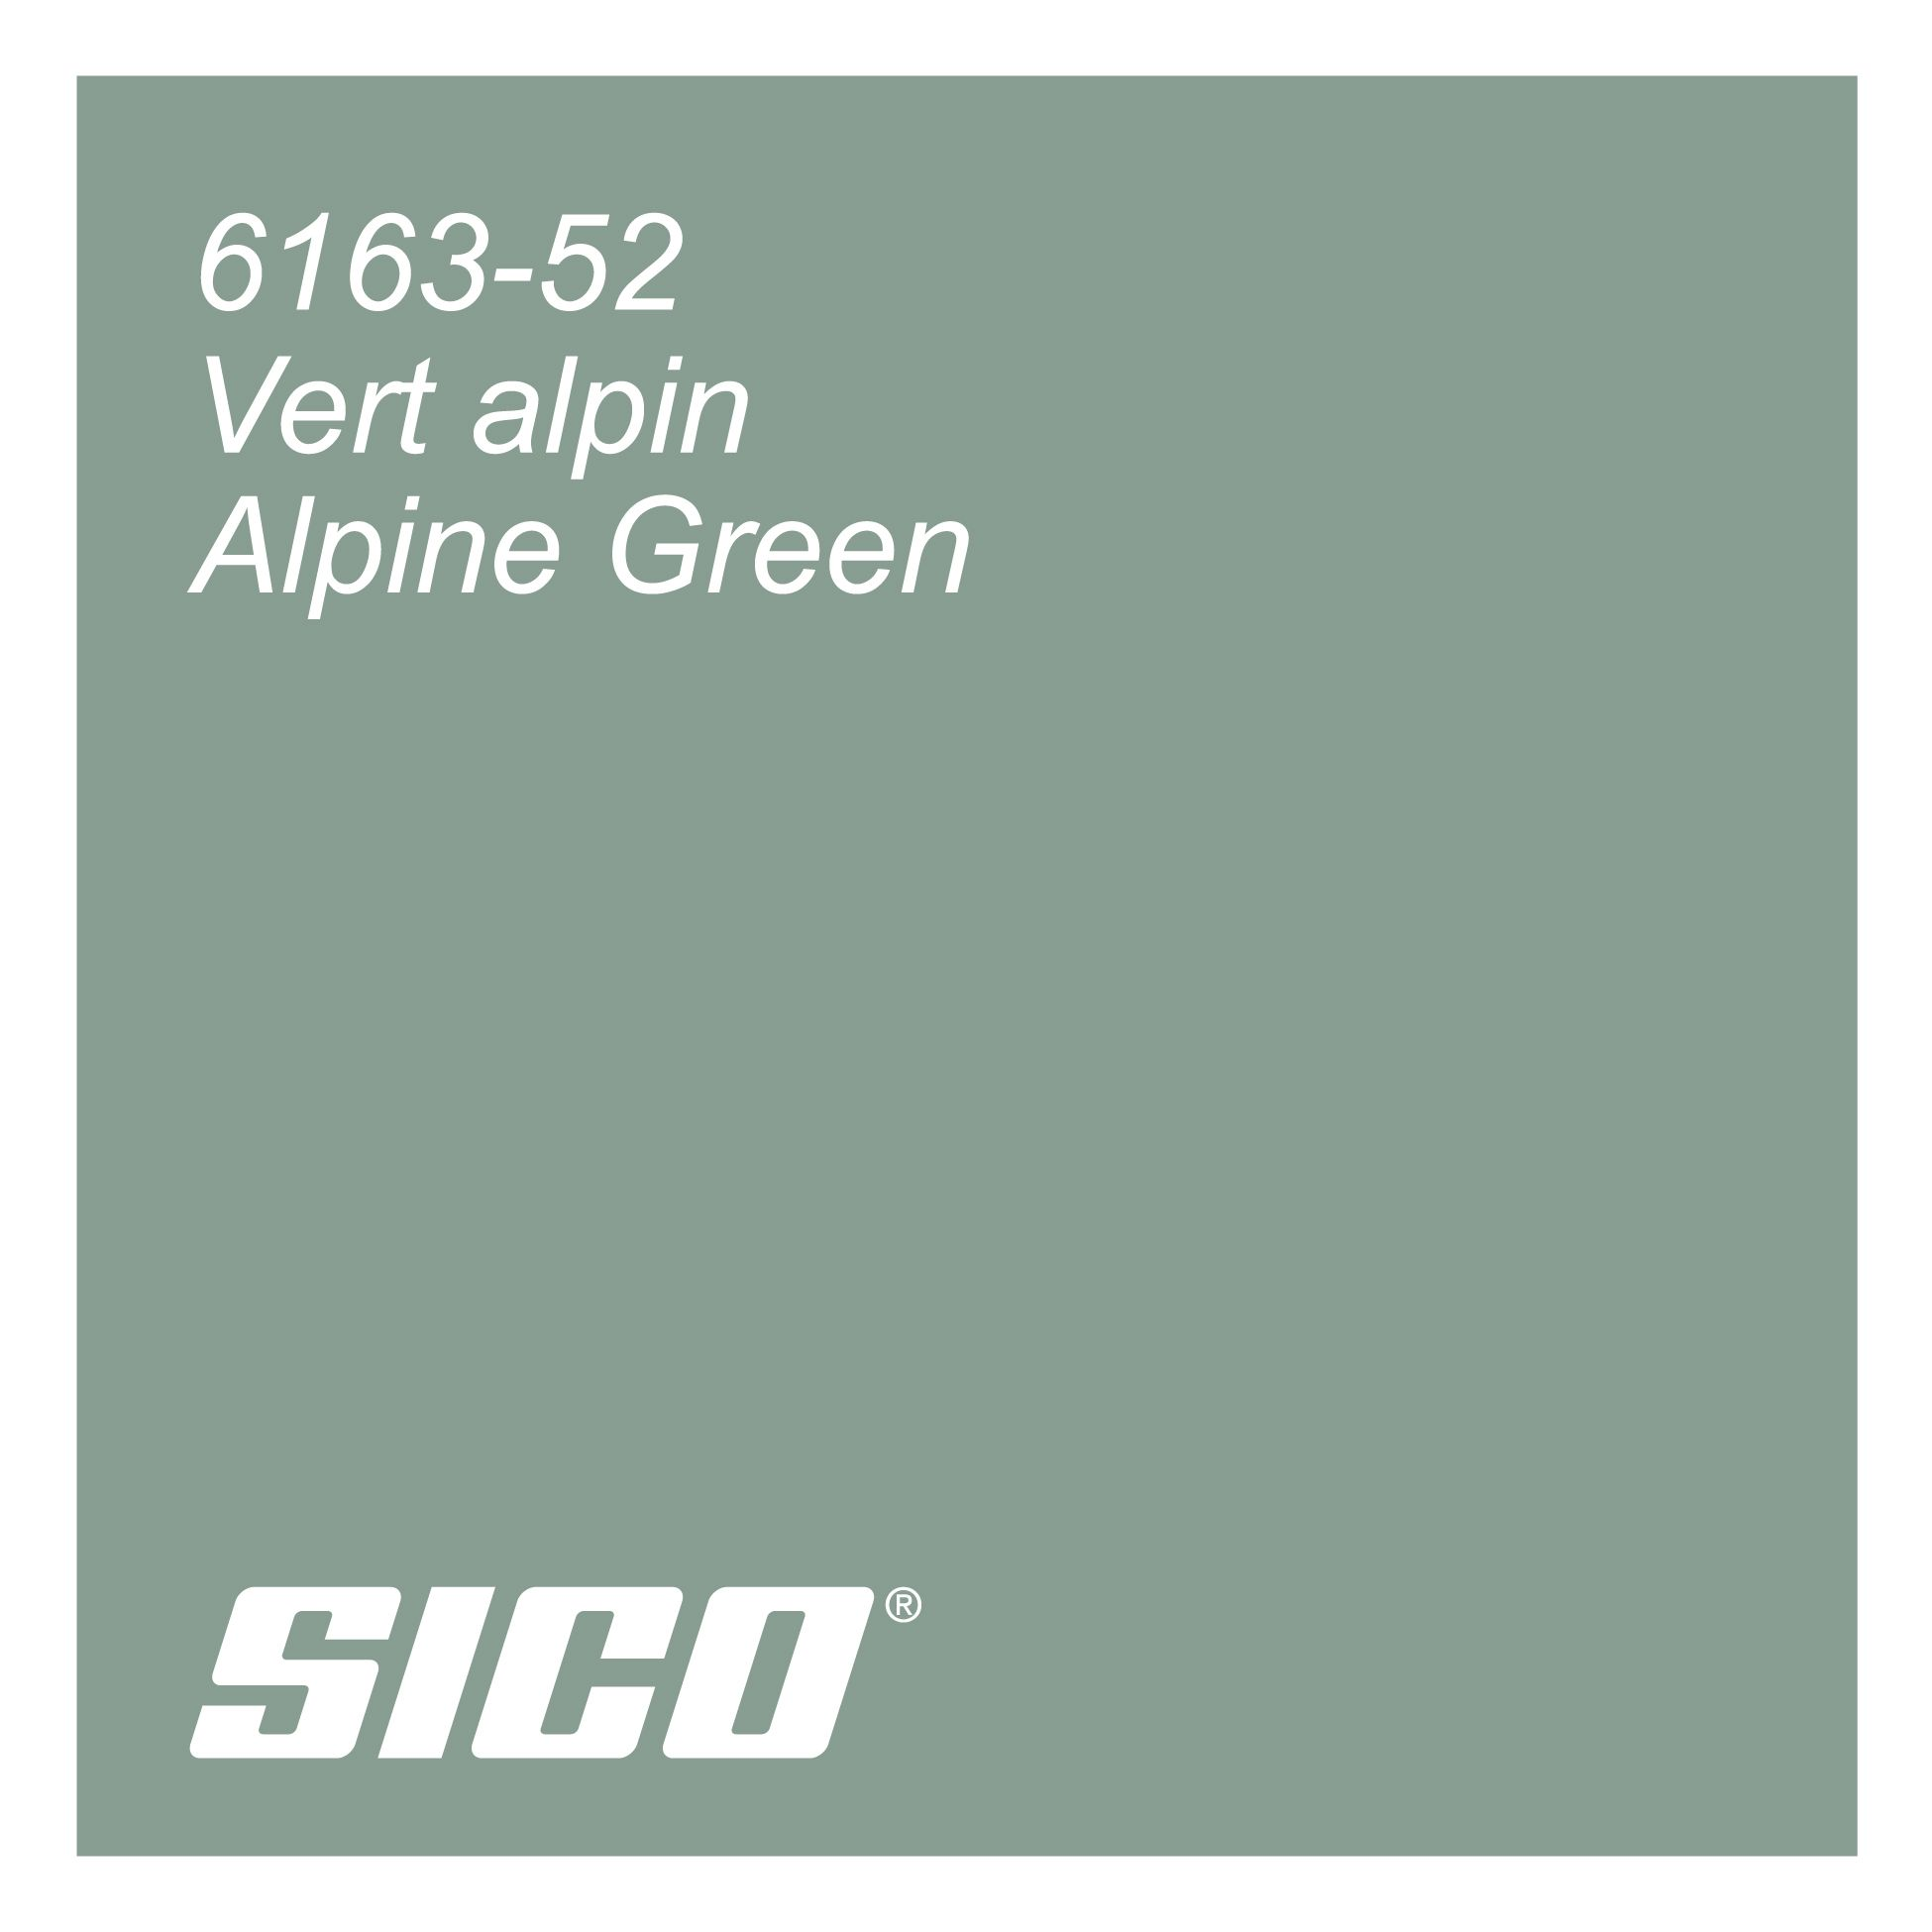 Alpine Green Paint Colour By Sico Paints Vert Alpin Couleur De Peinture Par